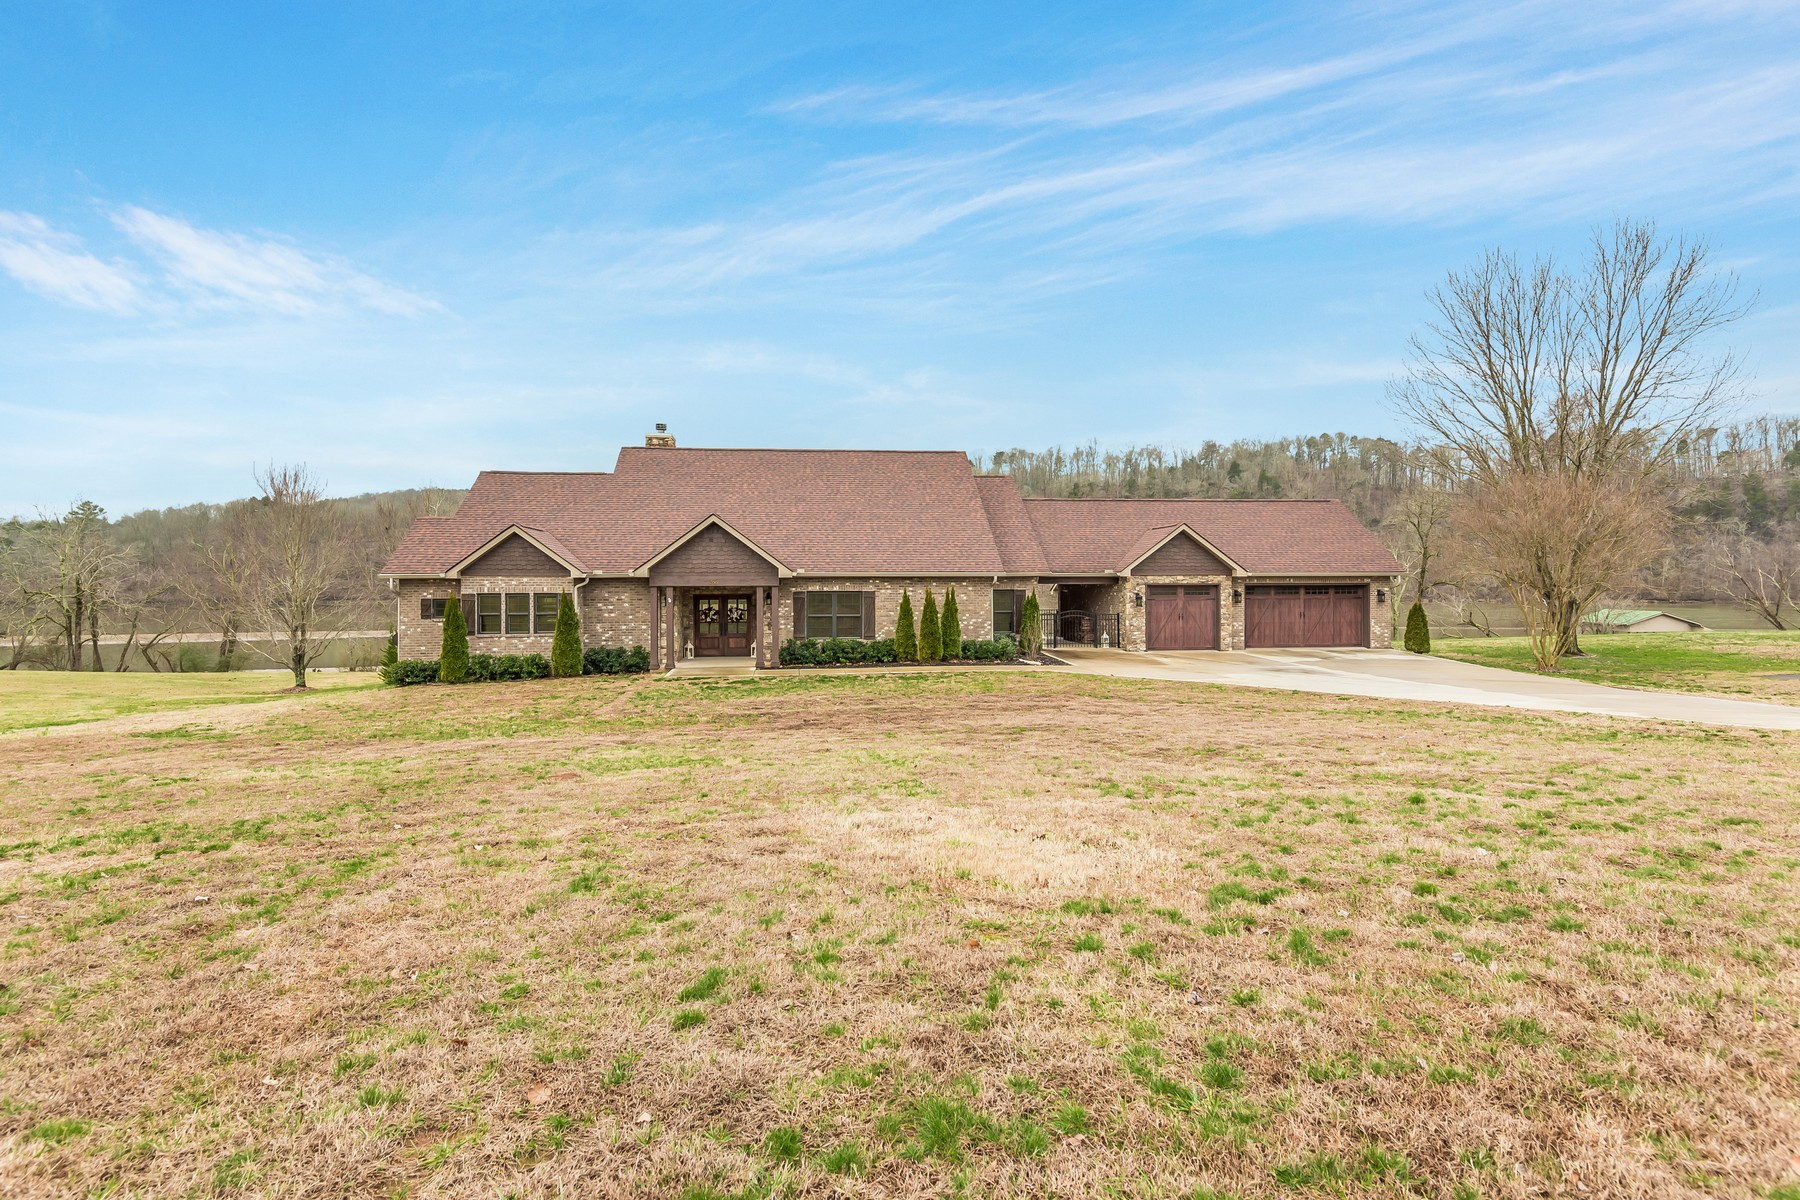 Single Family Home for Sale at Lake Living at It's Best 266 Marble View Drive Kingston, Tennessee 37763 United States